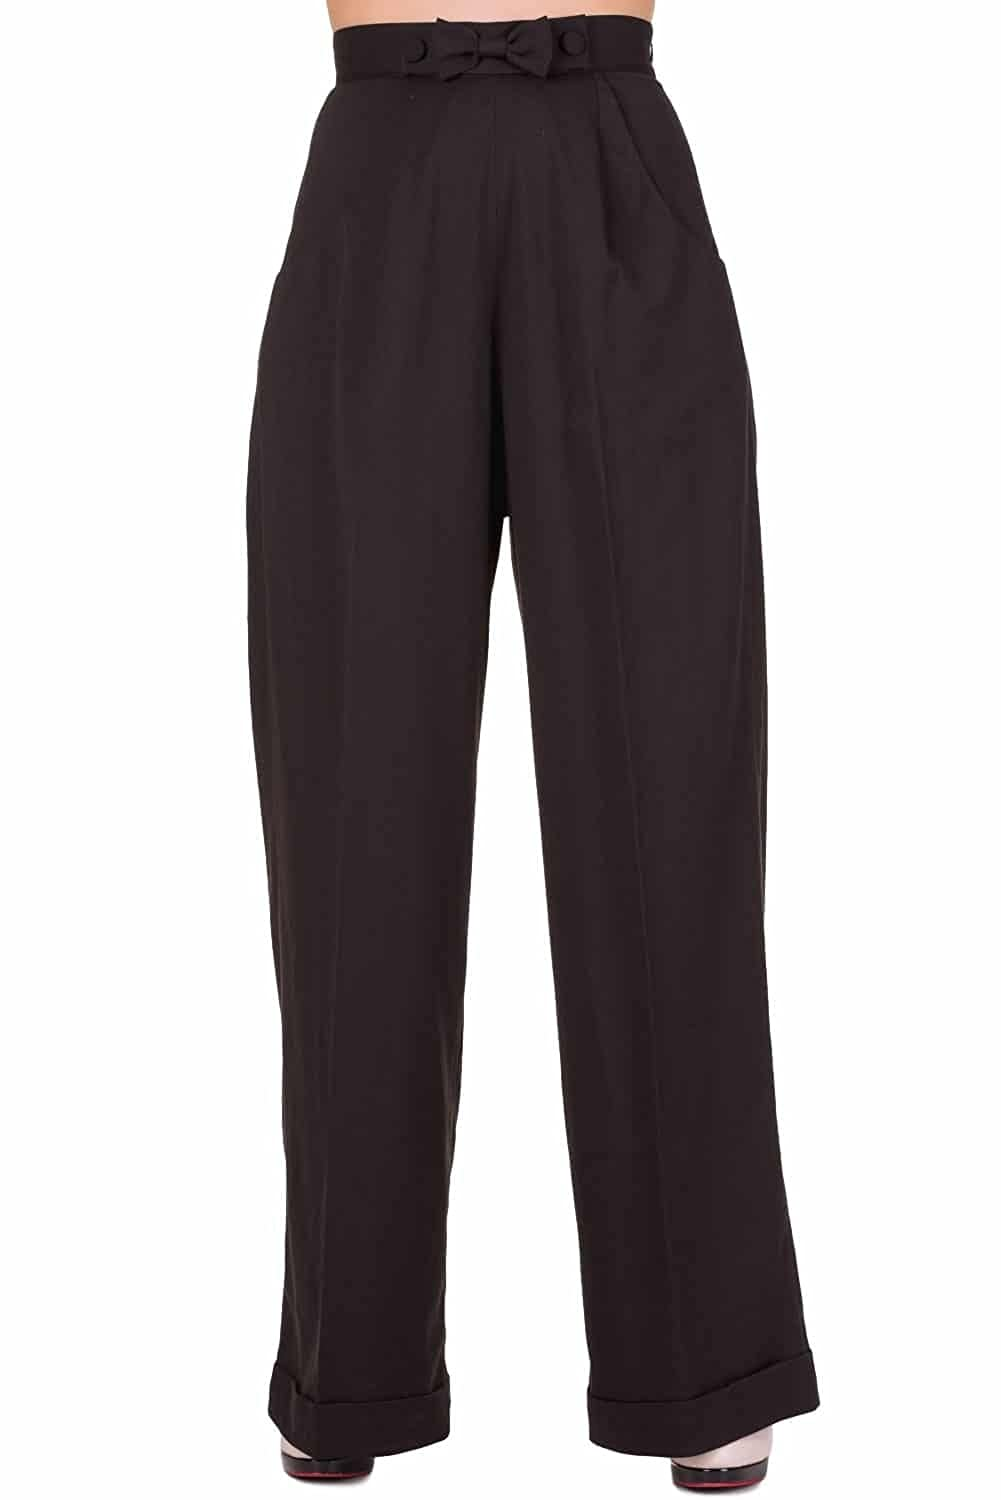 Banned Hidden Away High Waist Retro 40s 50s Office Formal Pants Wide Trousers